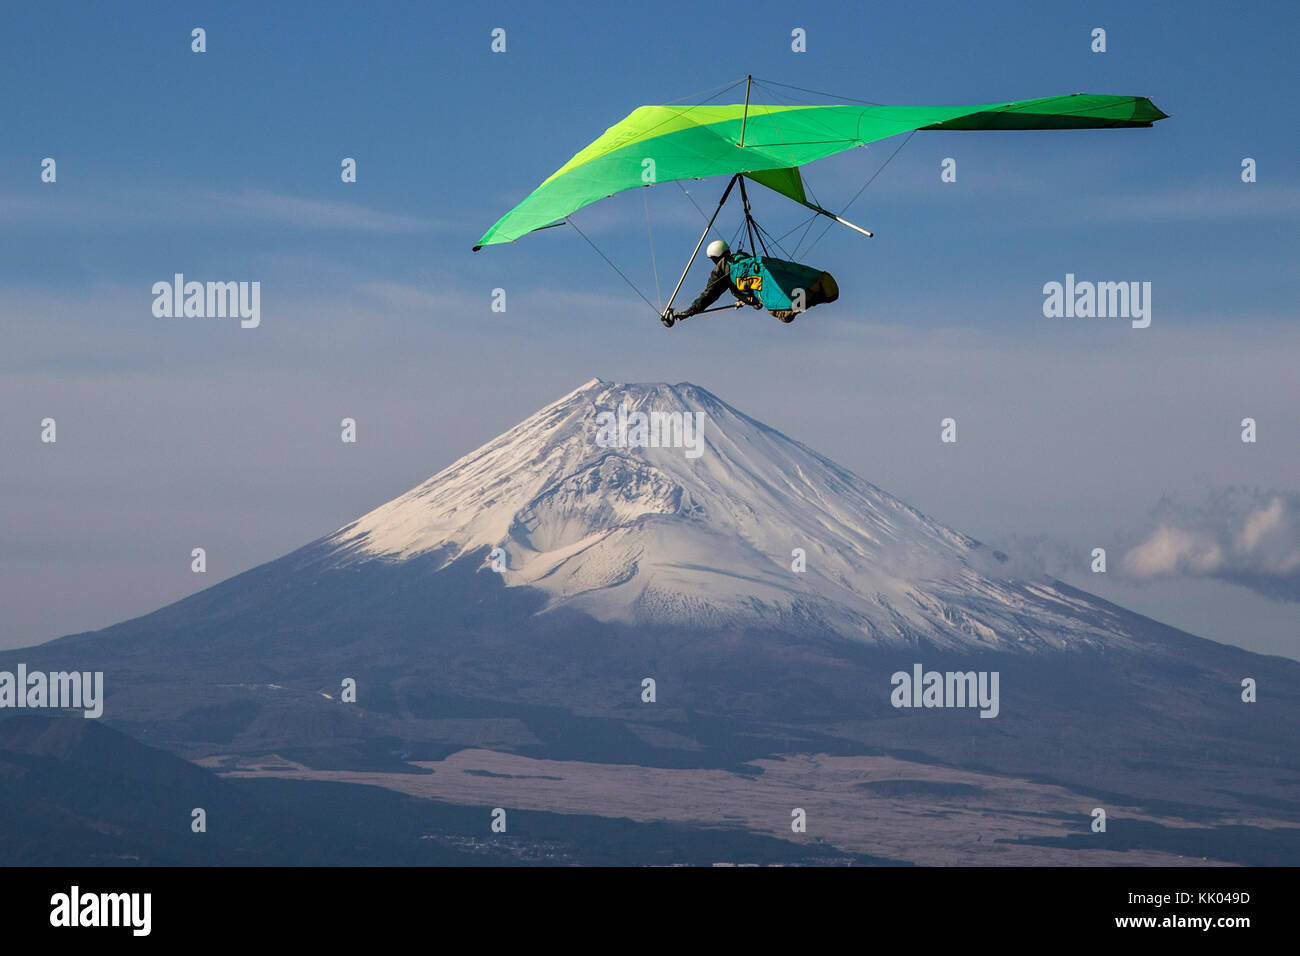 Mt Fuji Hang Gliding - One of the more popular spots for hang gliding is in the Izu Peninsula south of Mount Fuji, - Stock Image